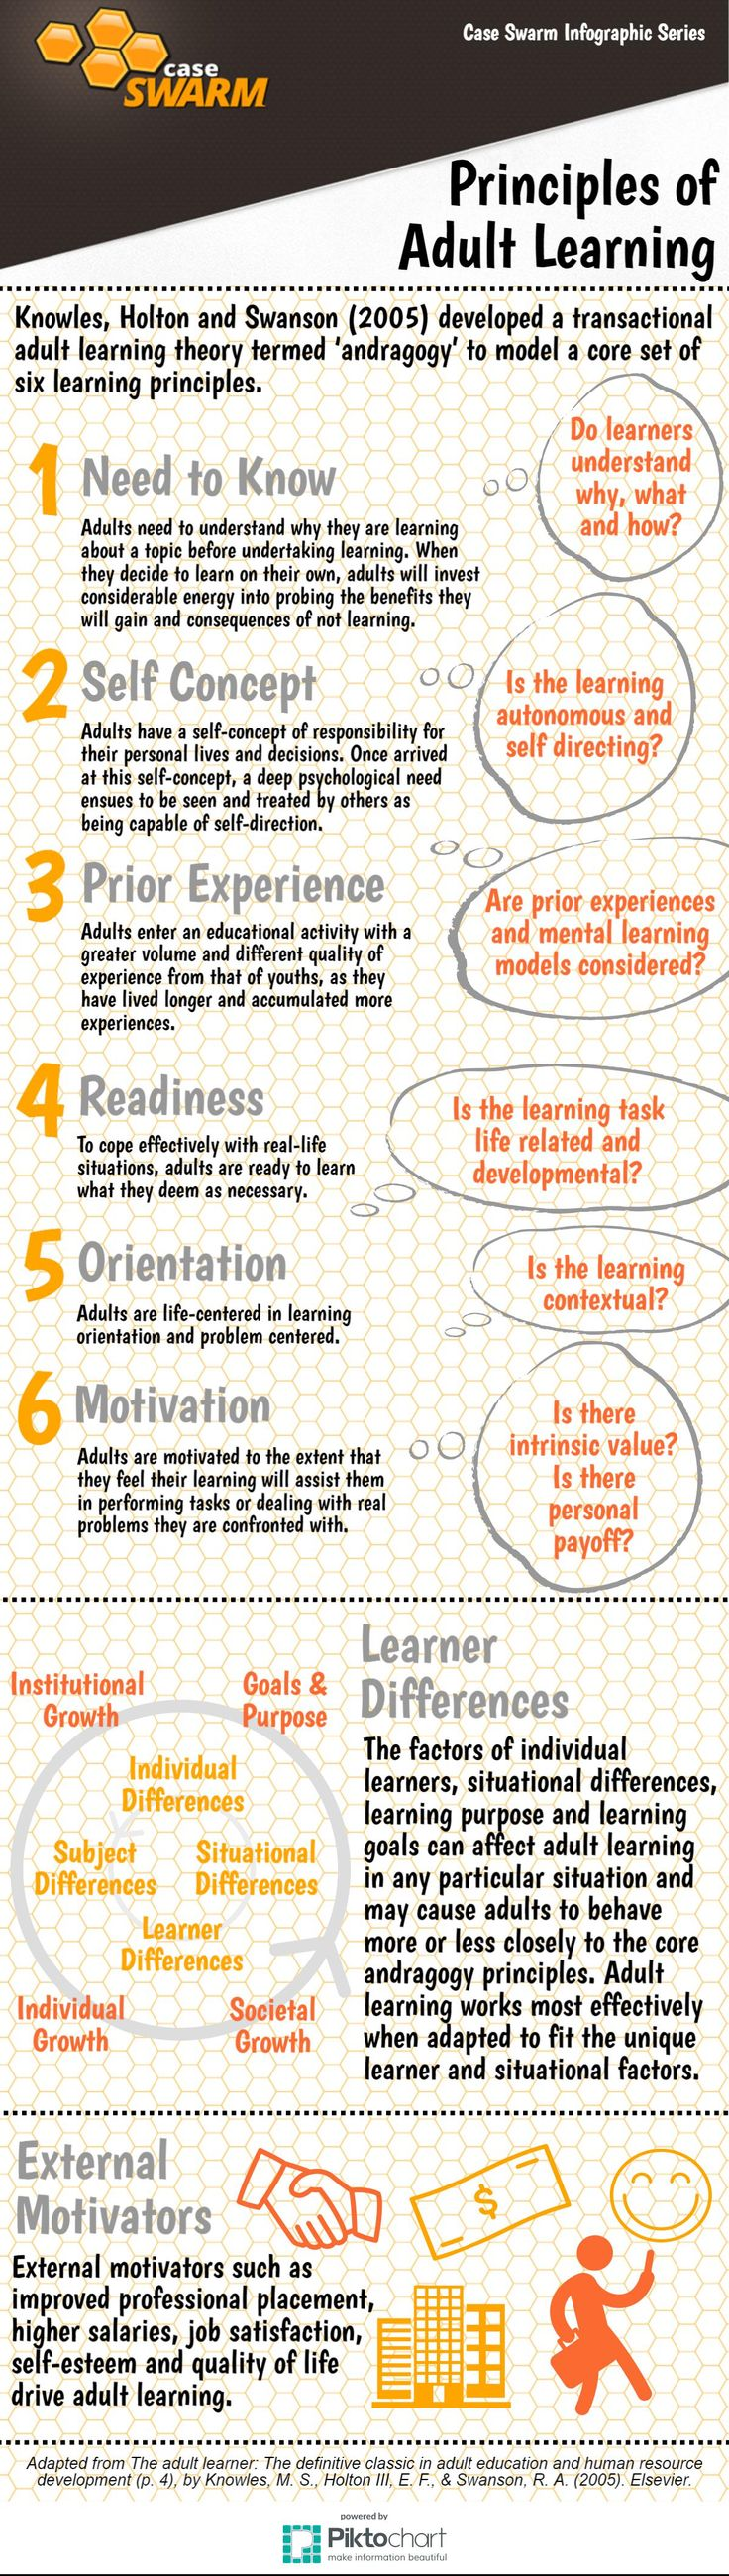 the effective principles for adult learning about the psychology of change Assumptions of adult learning: maturity moves one to more self direction, experience is a rich resource for learning, learning readiness is closely related to the developmental tasks of the adult's social role, adults are more problem centred than subject centred in their.